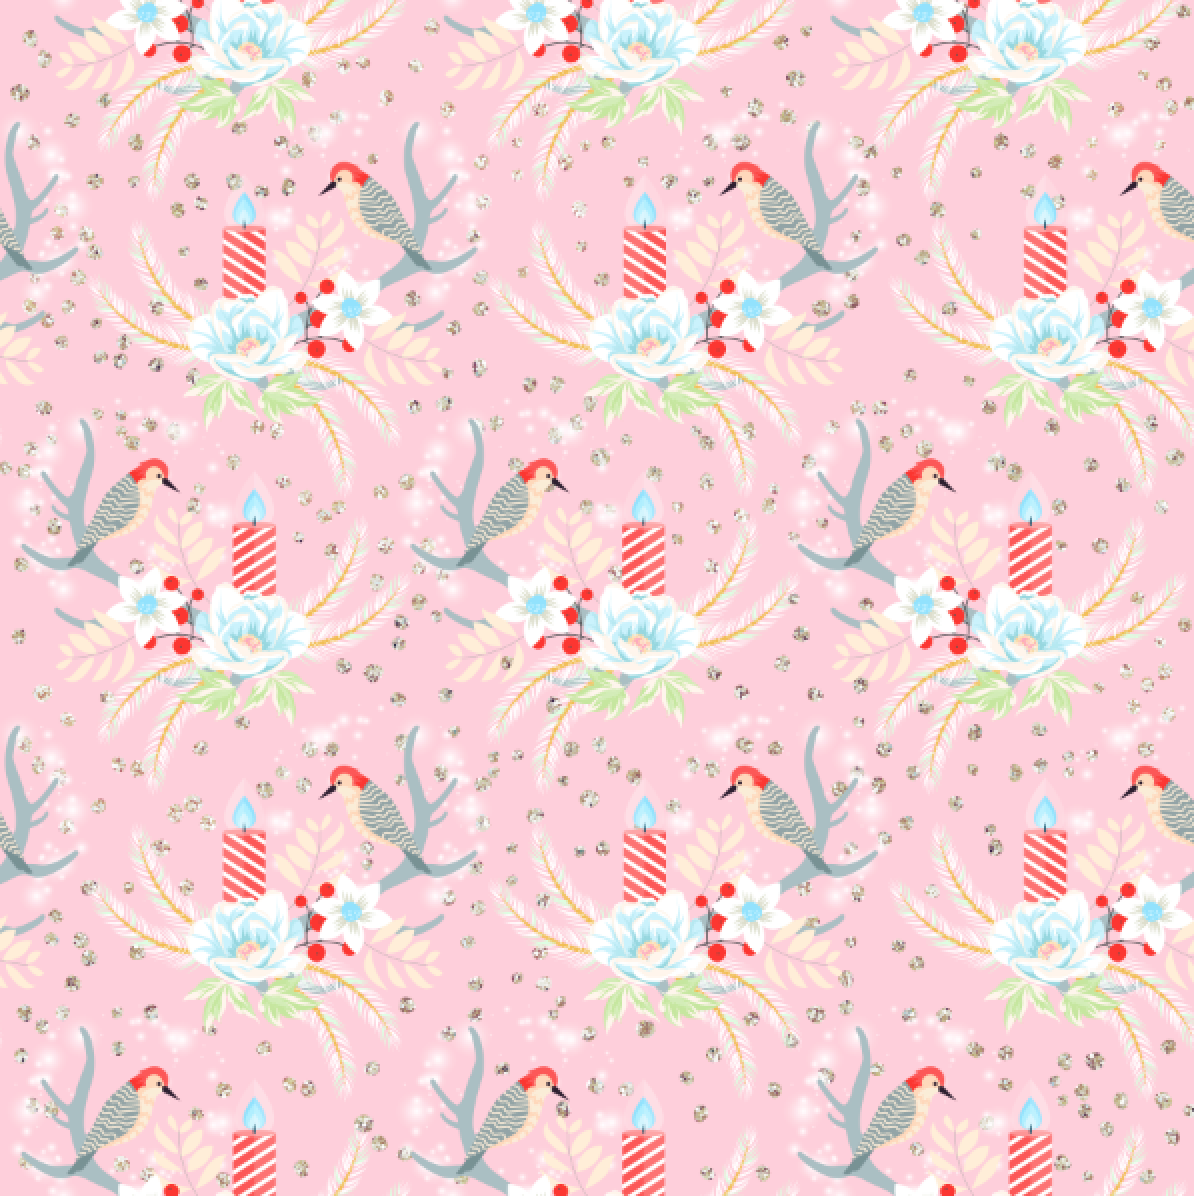 IN STOCK Winter Wonderland Birds Pink - Digital Fabric Print